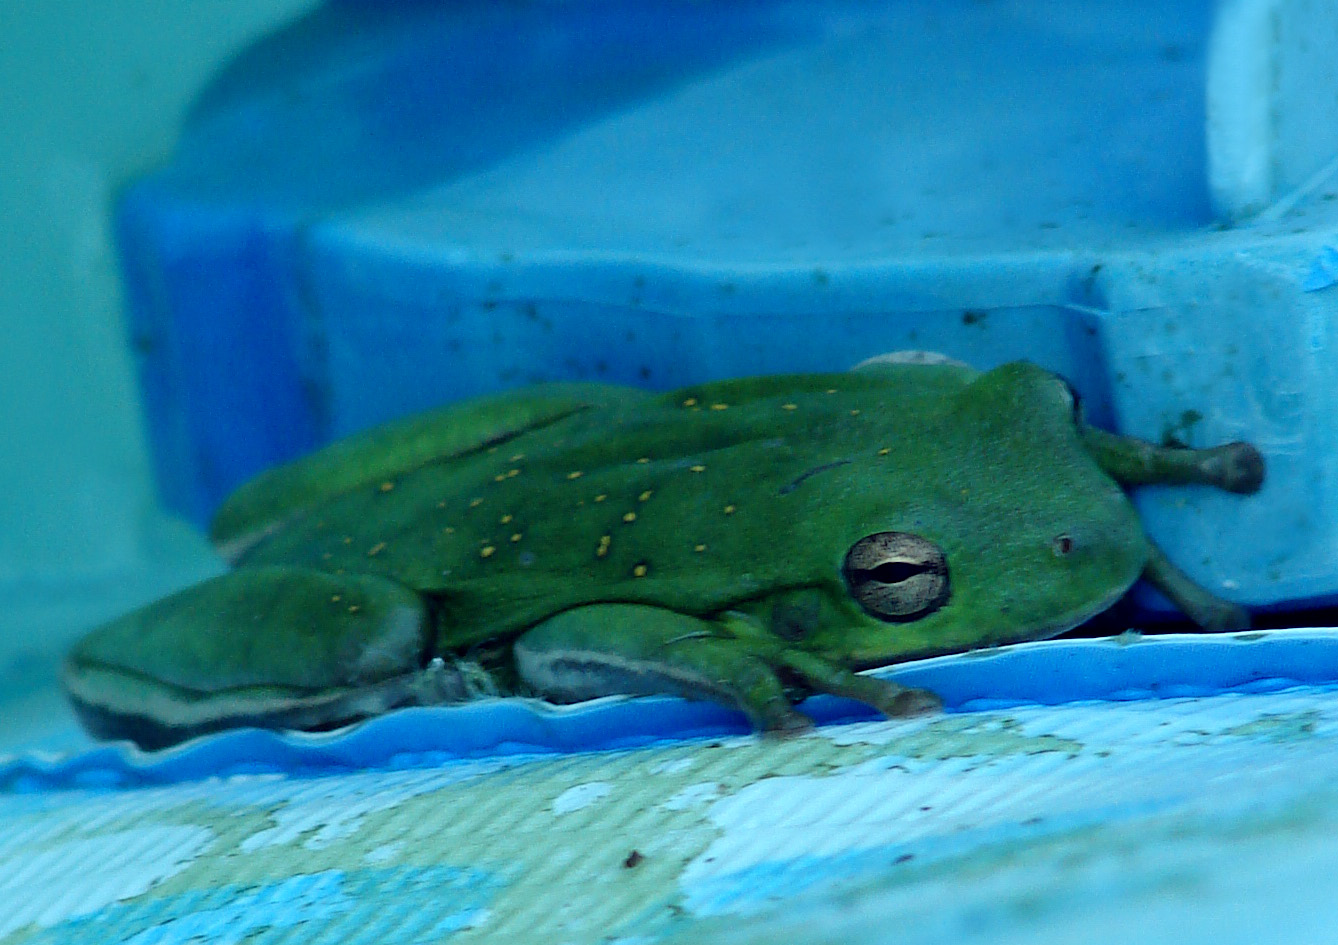 Close Up of Tree Frog on Pool Pump